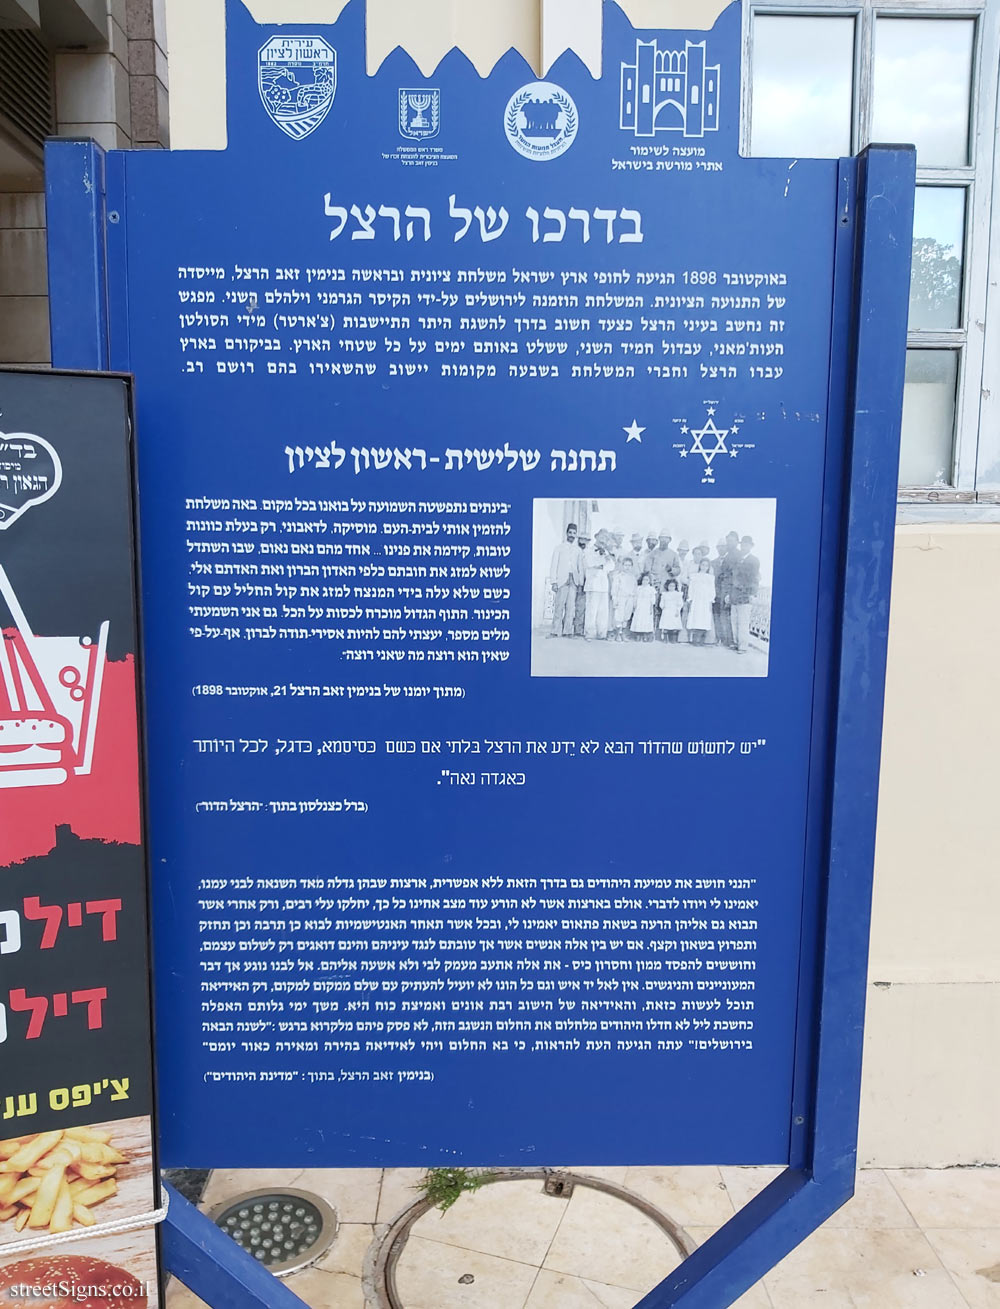 Rishon LeZion - Heritage Sites in Israel - In Herzl's Way - 3rd Station